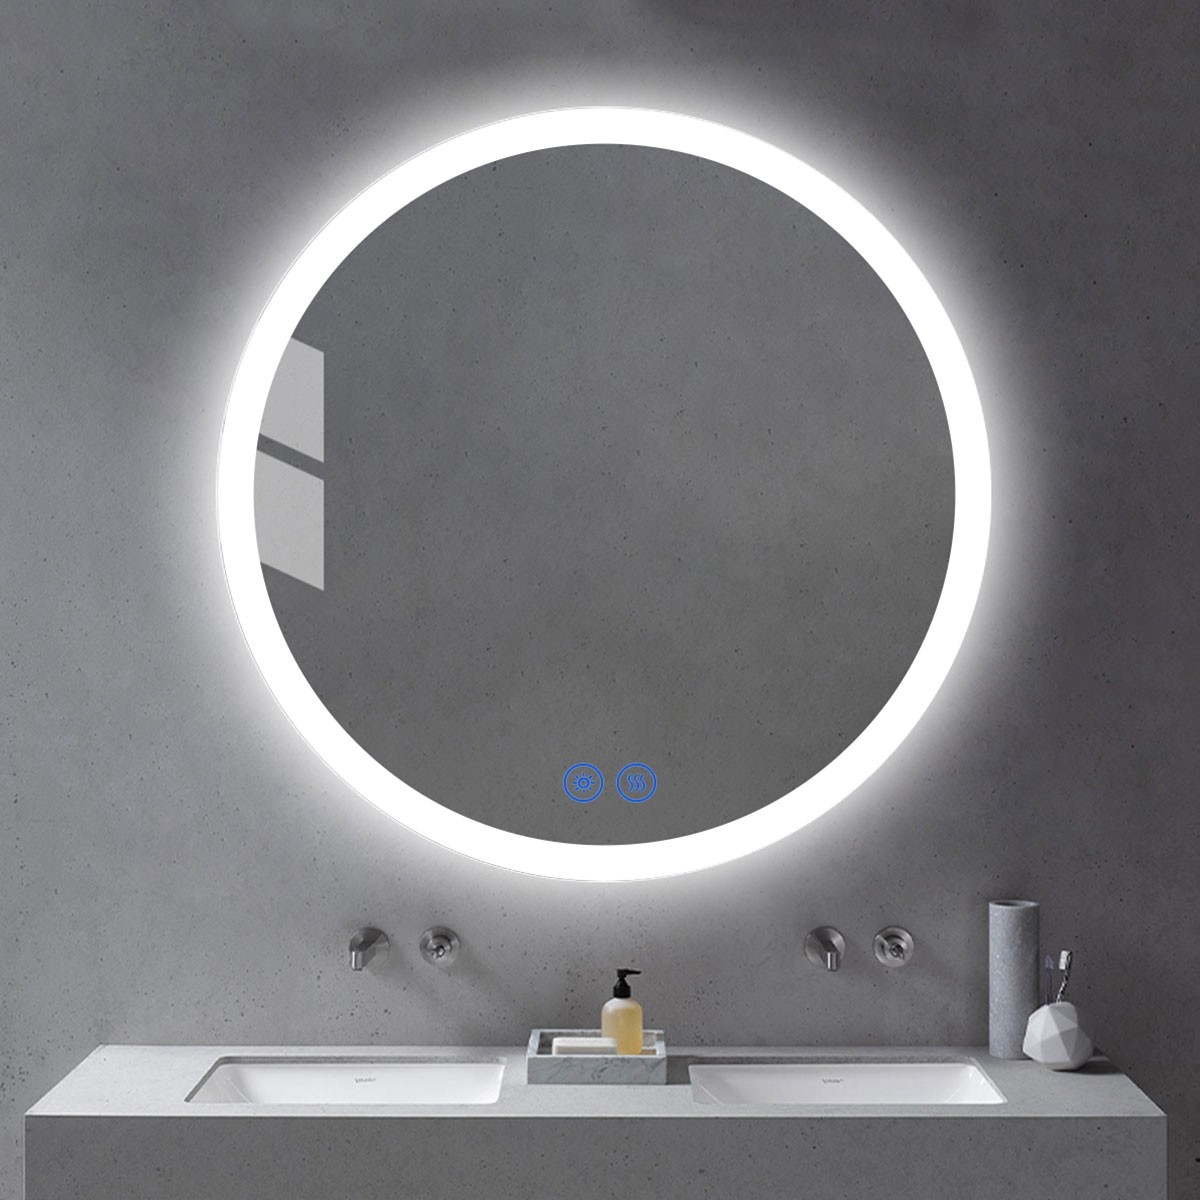 DECORAPORT 36 x 36 Inch LED Bathroom Mirror/Dress Mirror with Touch Button, Anti Fog, Dimmable, Vertical Mount (YT04-3636)